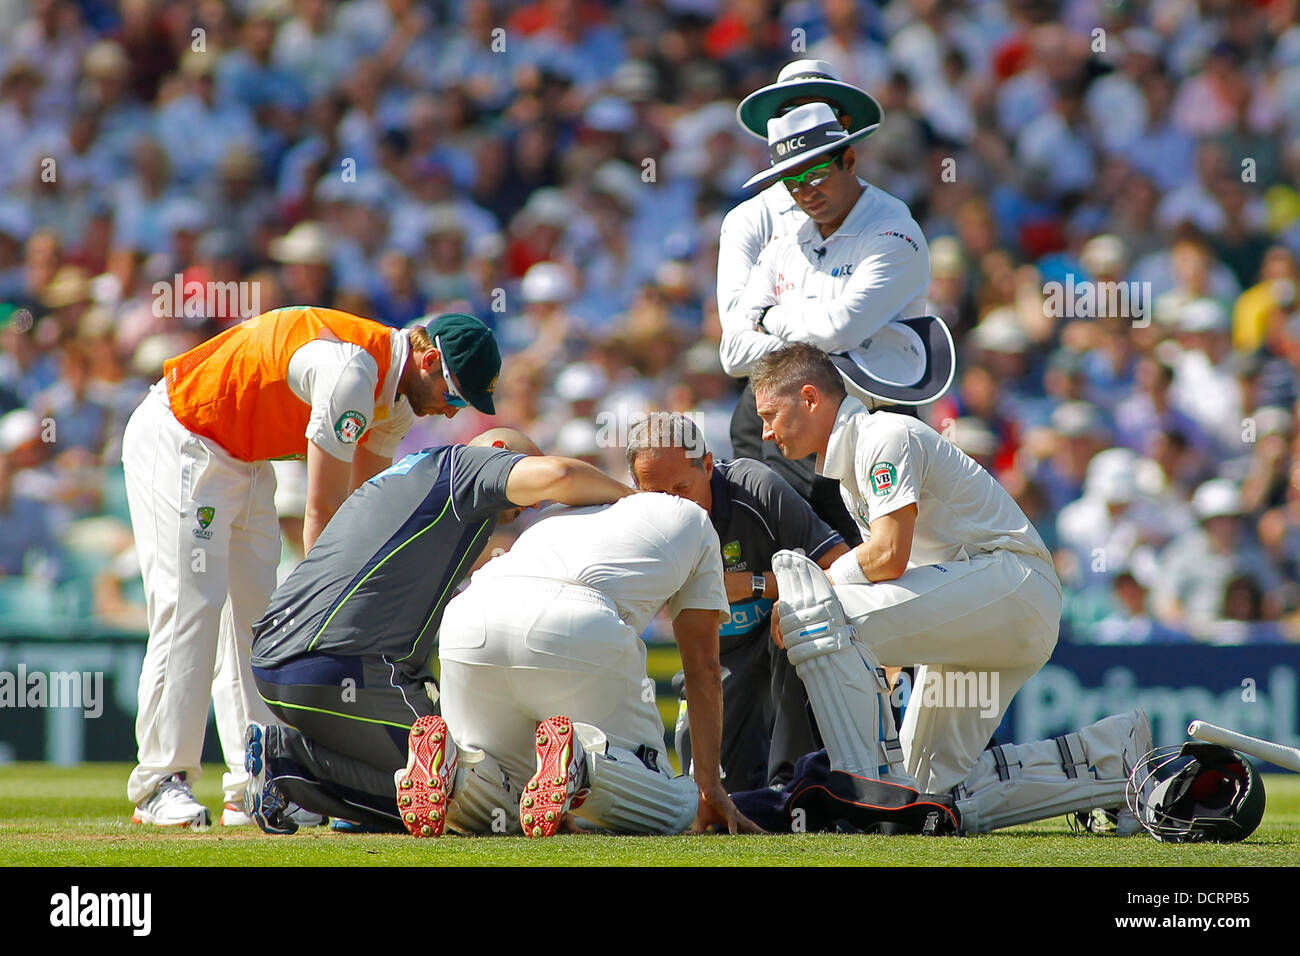 London, UK. 21st Aug, 2013. Shane Watson gets some medical attention after being hit on the head during day one - Stock Image